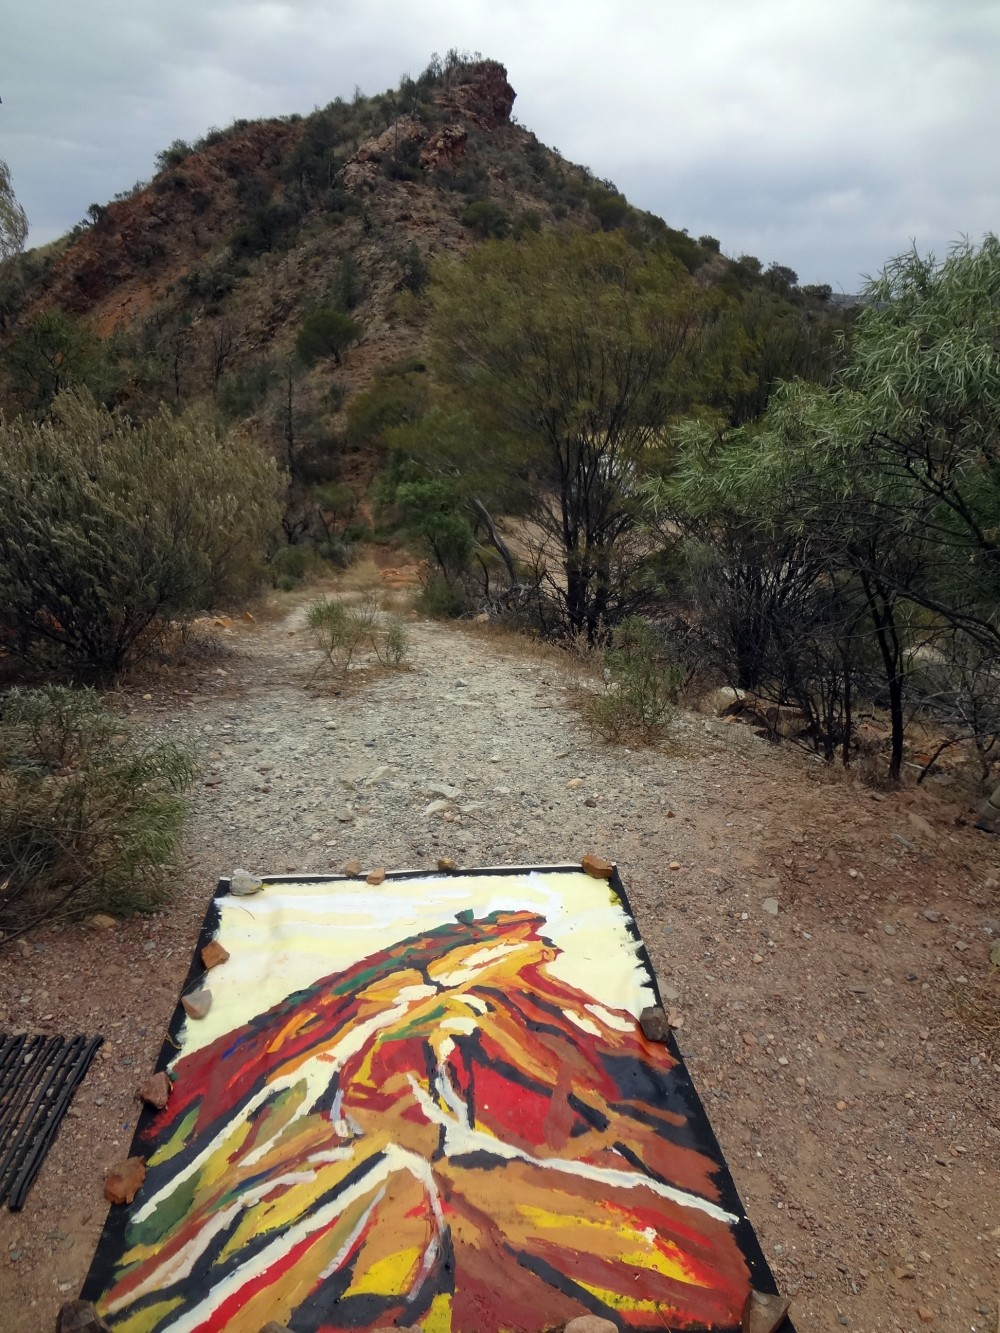 Arkaroola on site 3 by